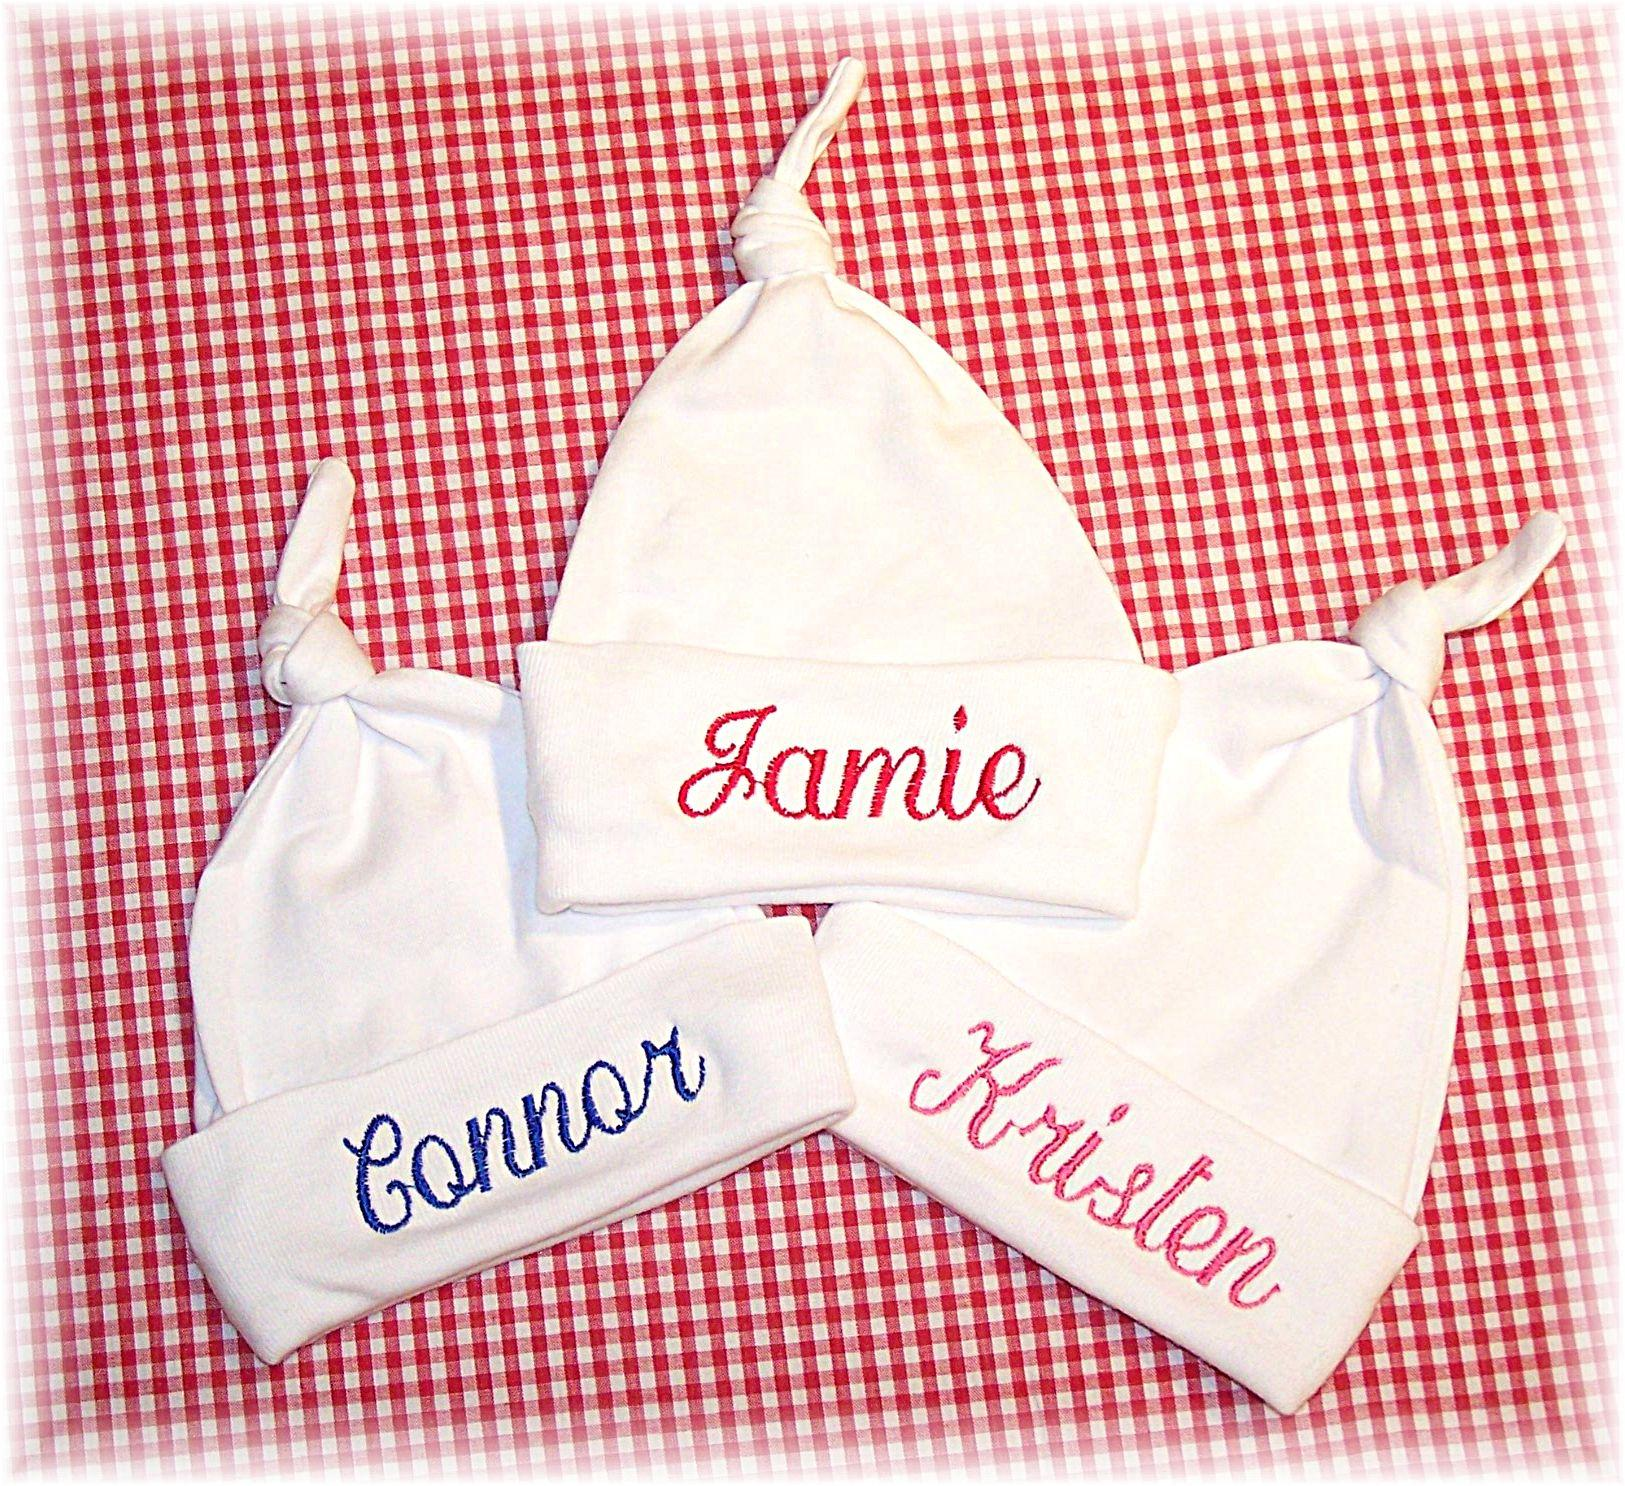 Personalised New Baby Gifts Australia : Personalized baby hats